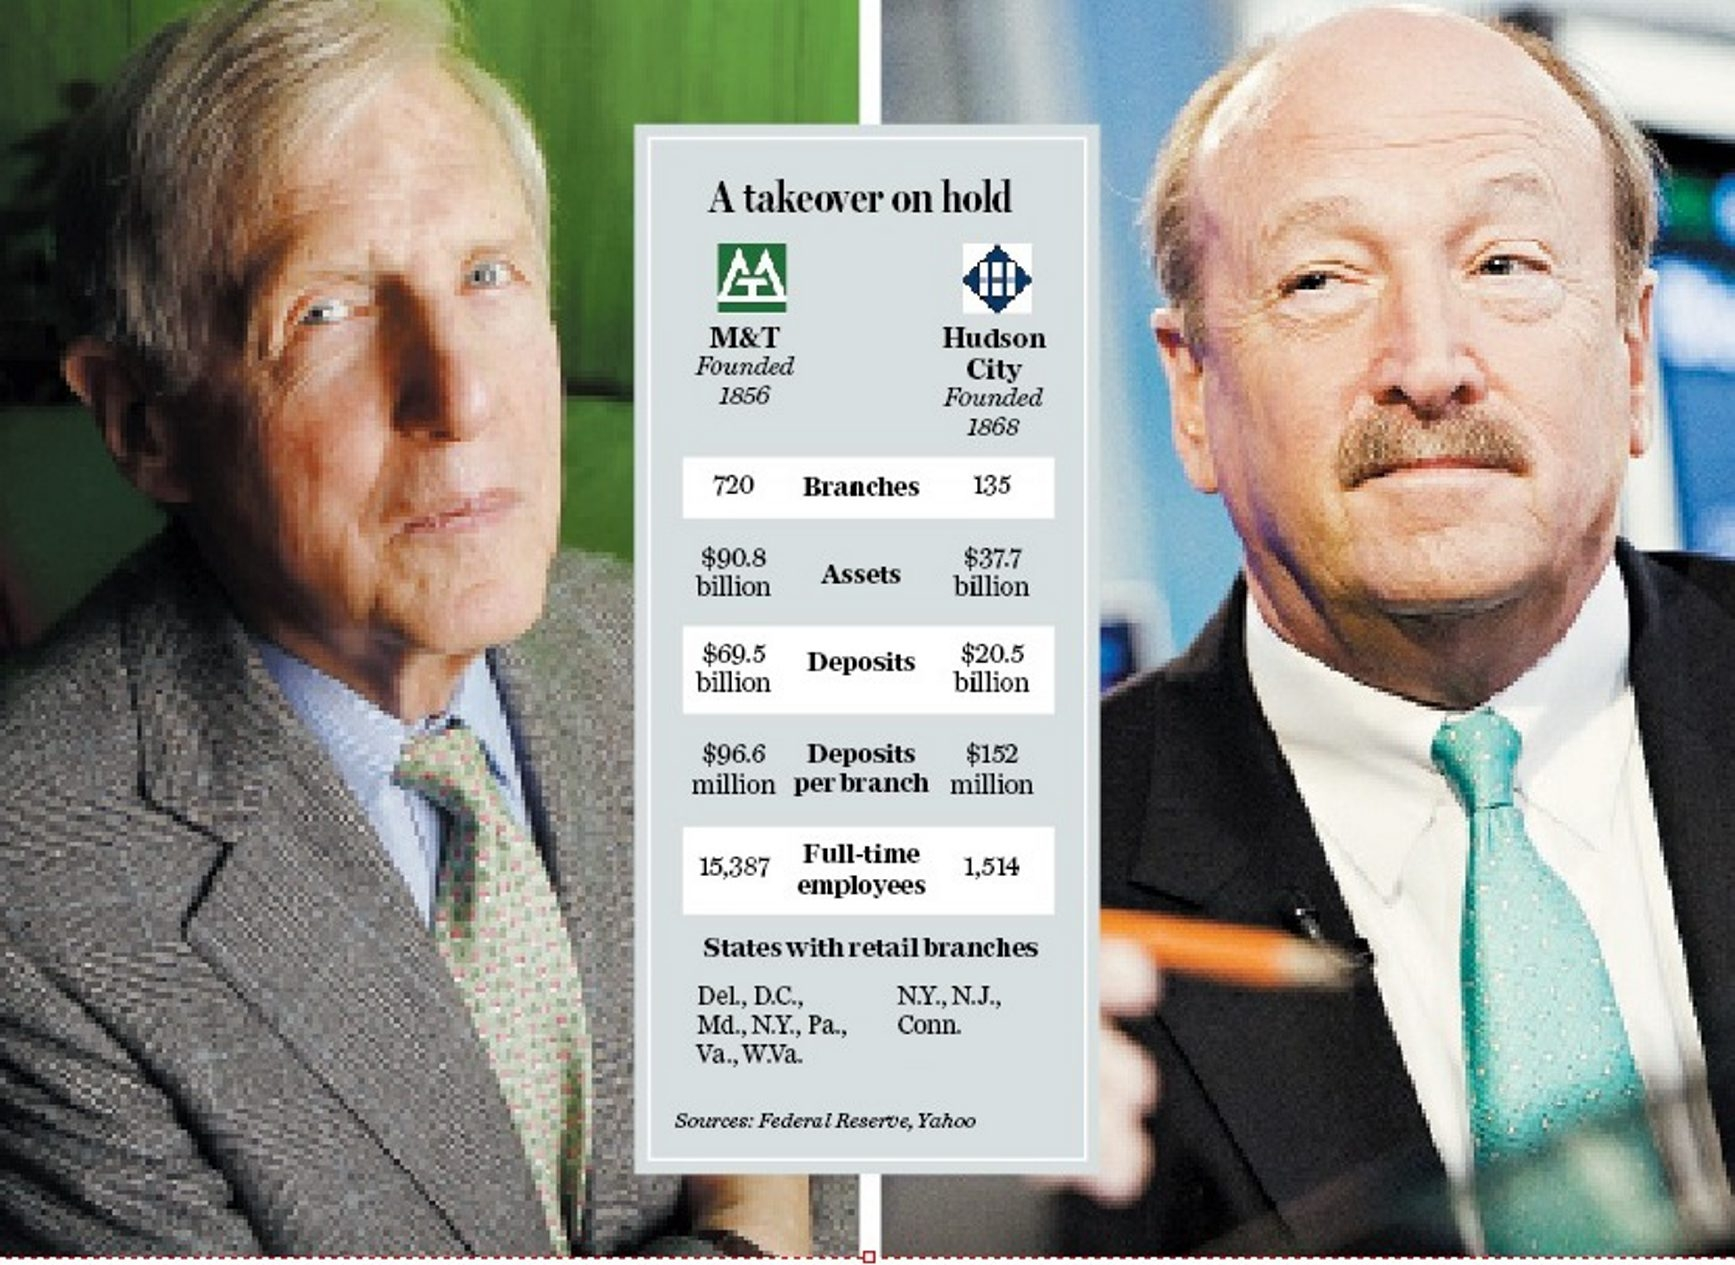 Chairman and CEO Bob Wilmers, left, has M&T moving closer to becoming a top 10 bank in the U.S. At right, Ronald Hermance, chief executive officer of Hudson City, could terminate the deal without a financial penalty. (Wilmers photo by Derek Gee/Buffalo News)